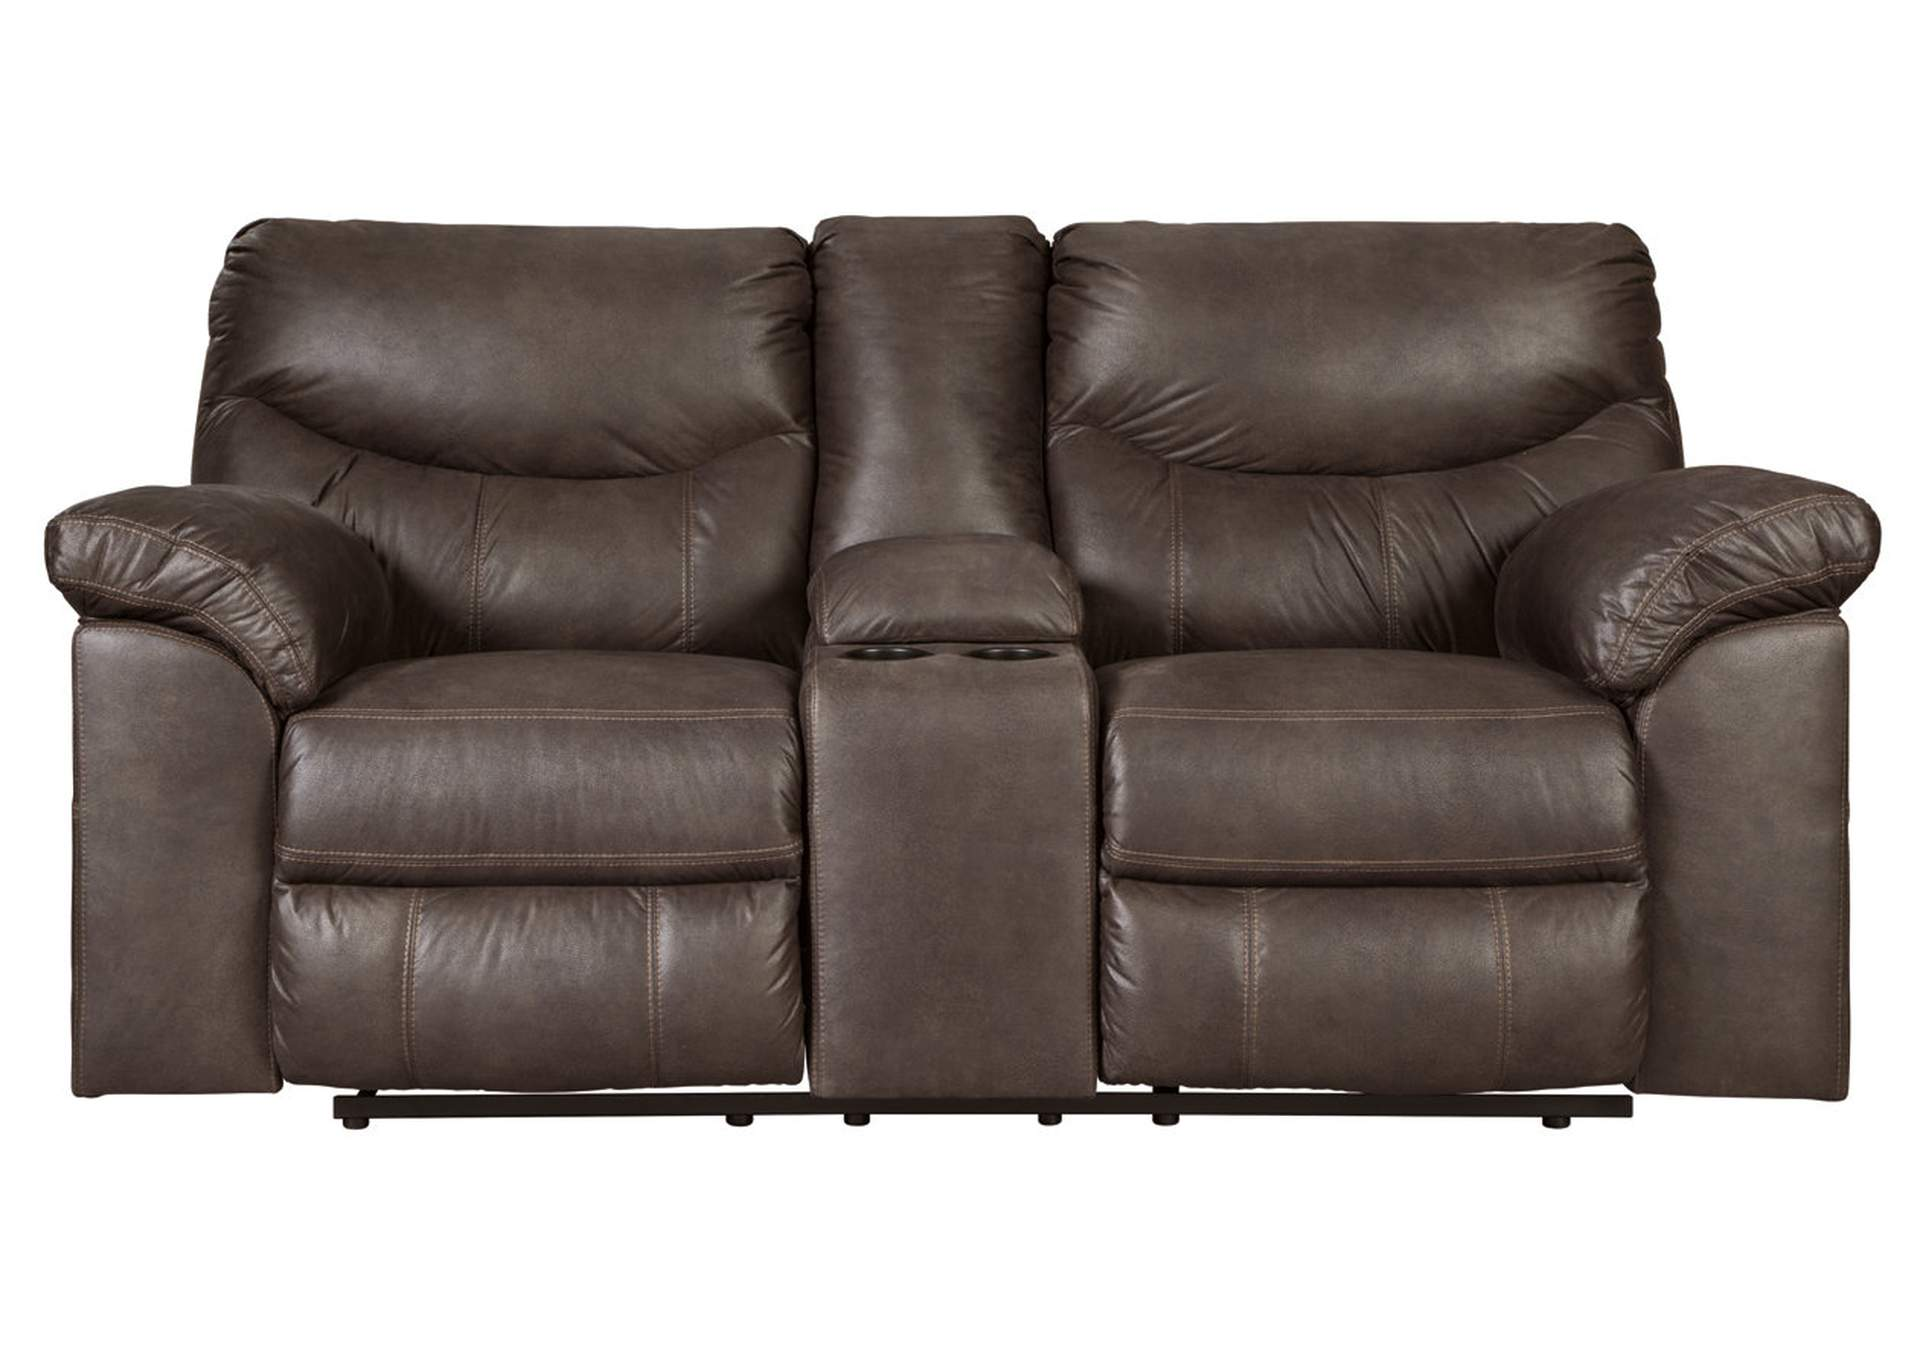 Boxberg Teak Double Reclining Loveseat w/Console,Signature Design By Ashley